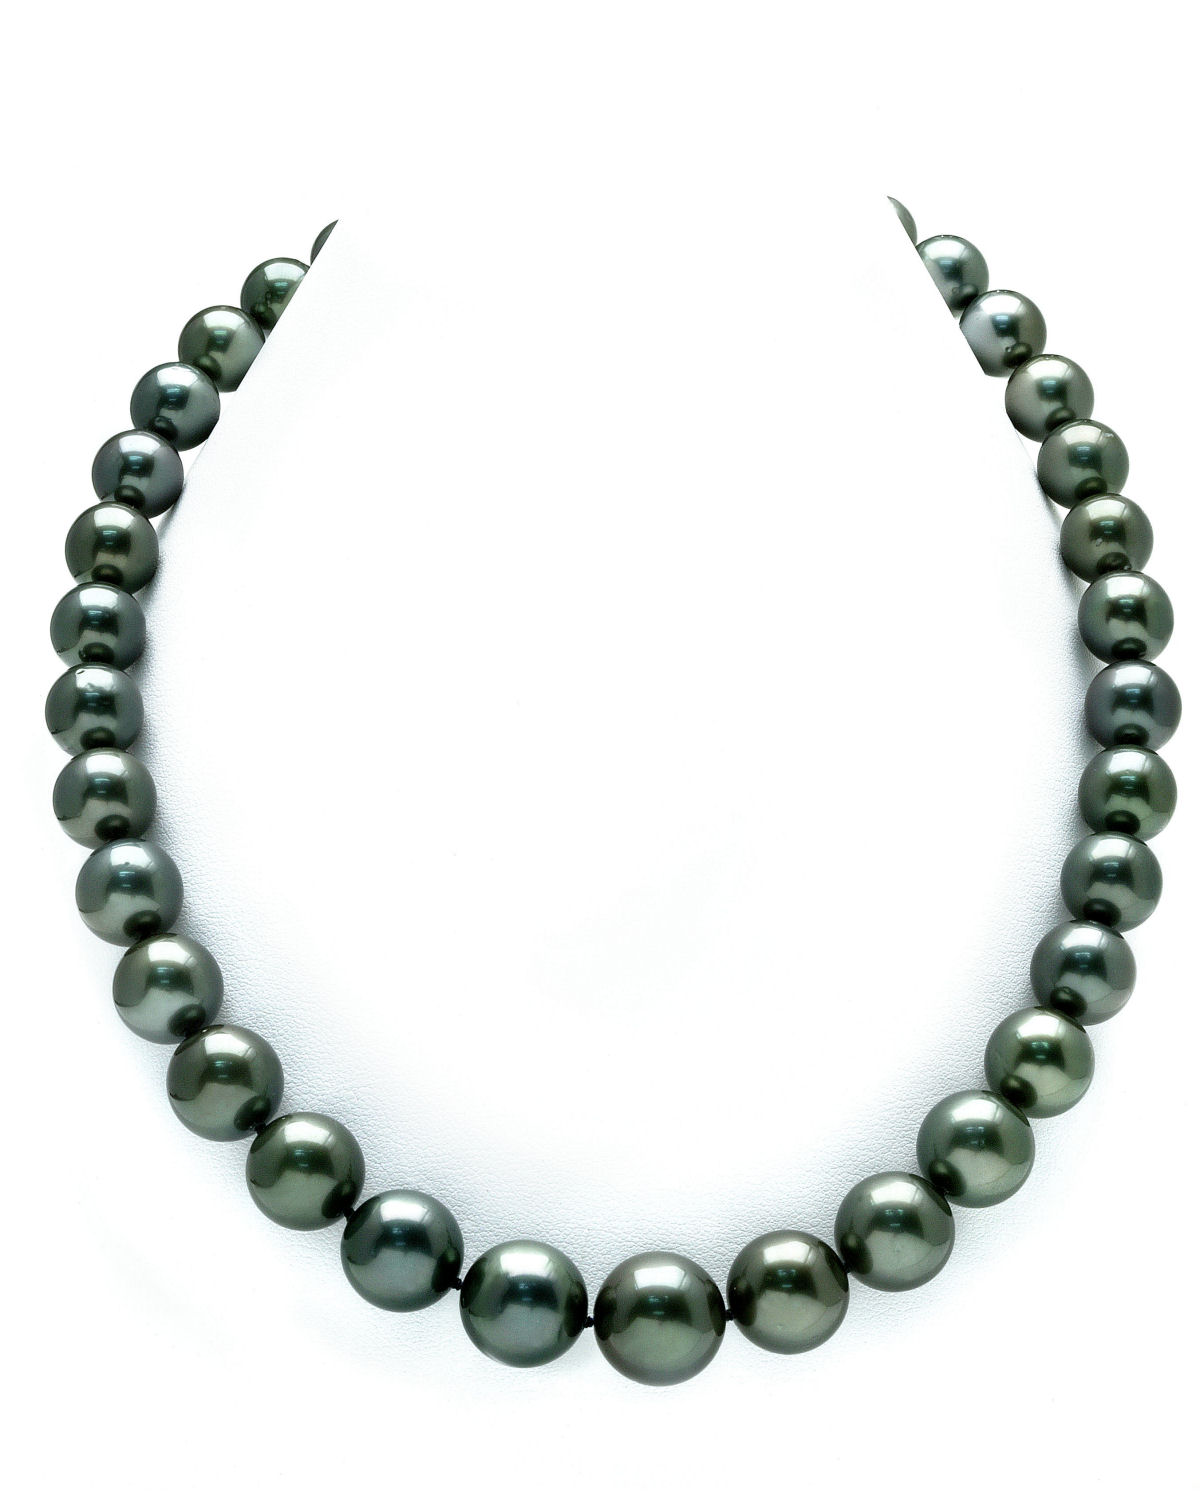 10-12mm Tahitian South Sea Pearl Necklace